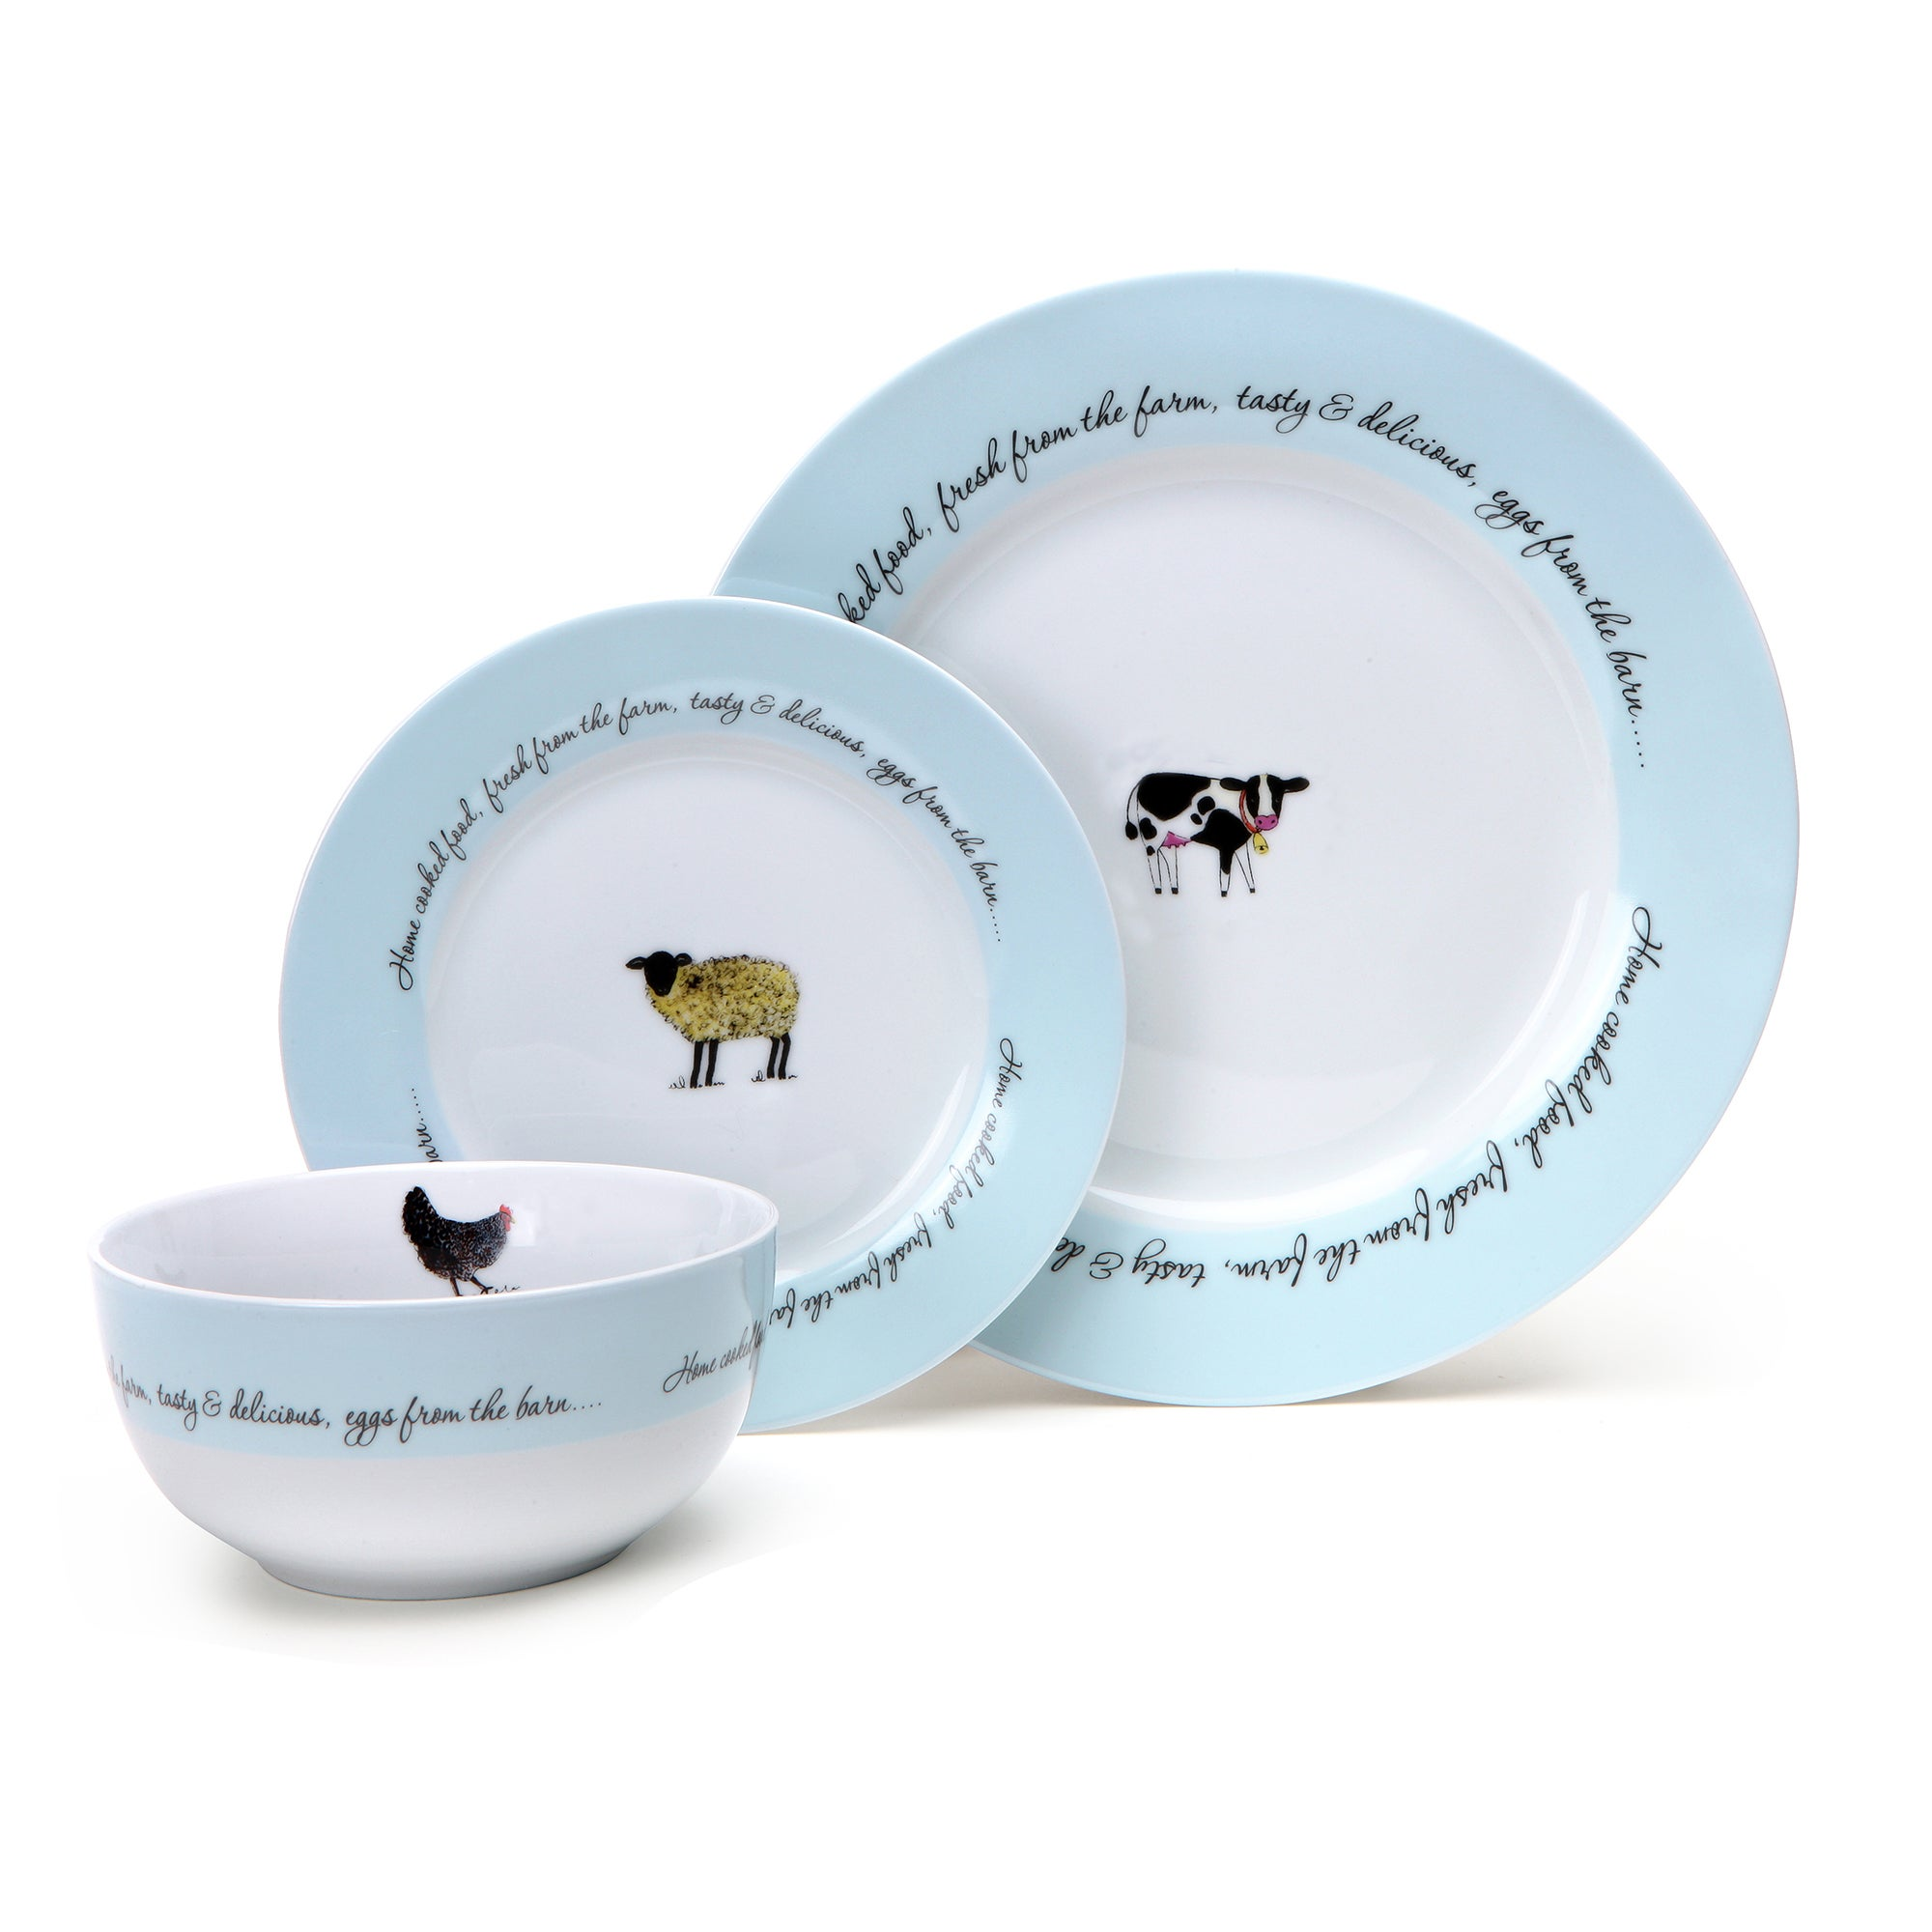 Bakewell Farm Collection 12 Piece Dinnerware Set